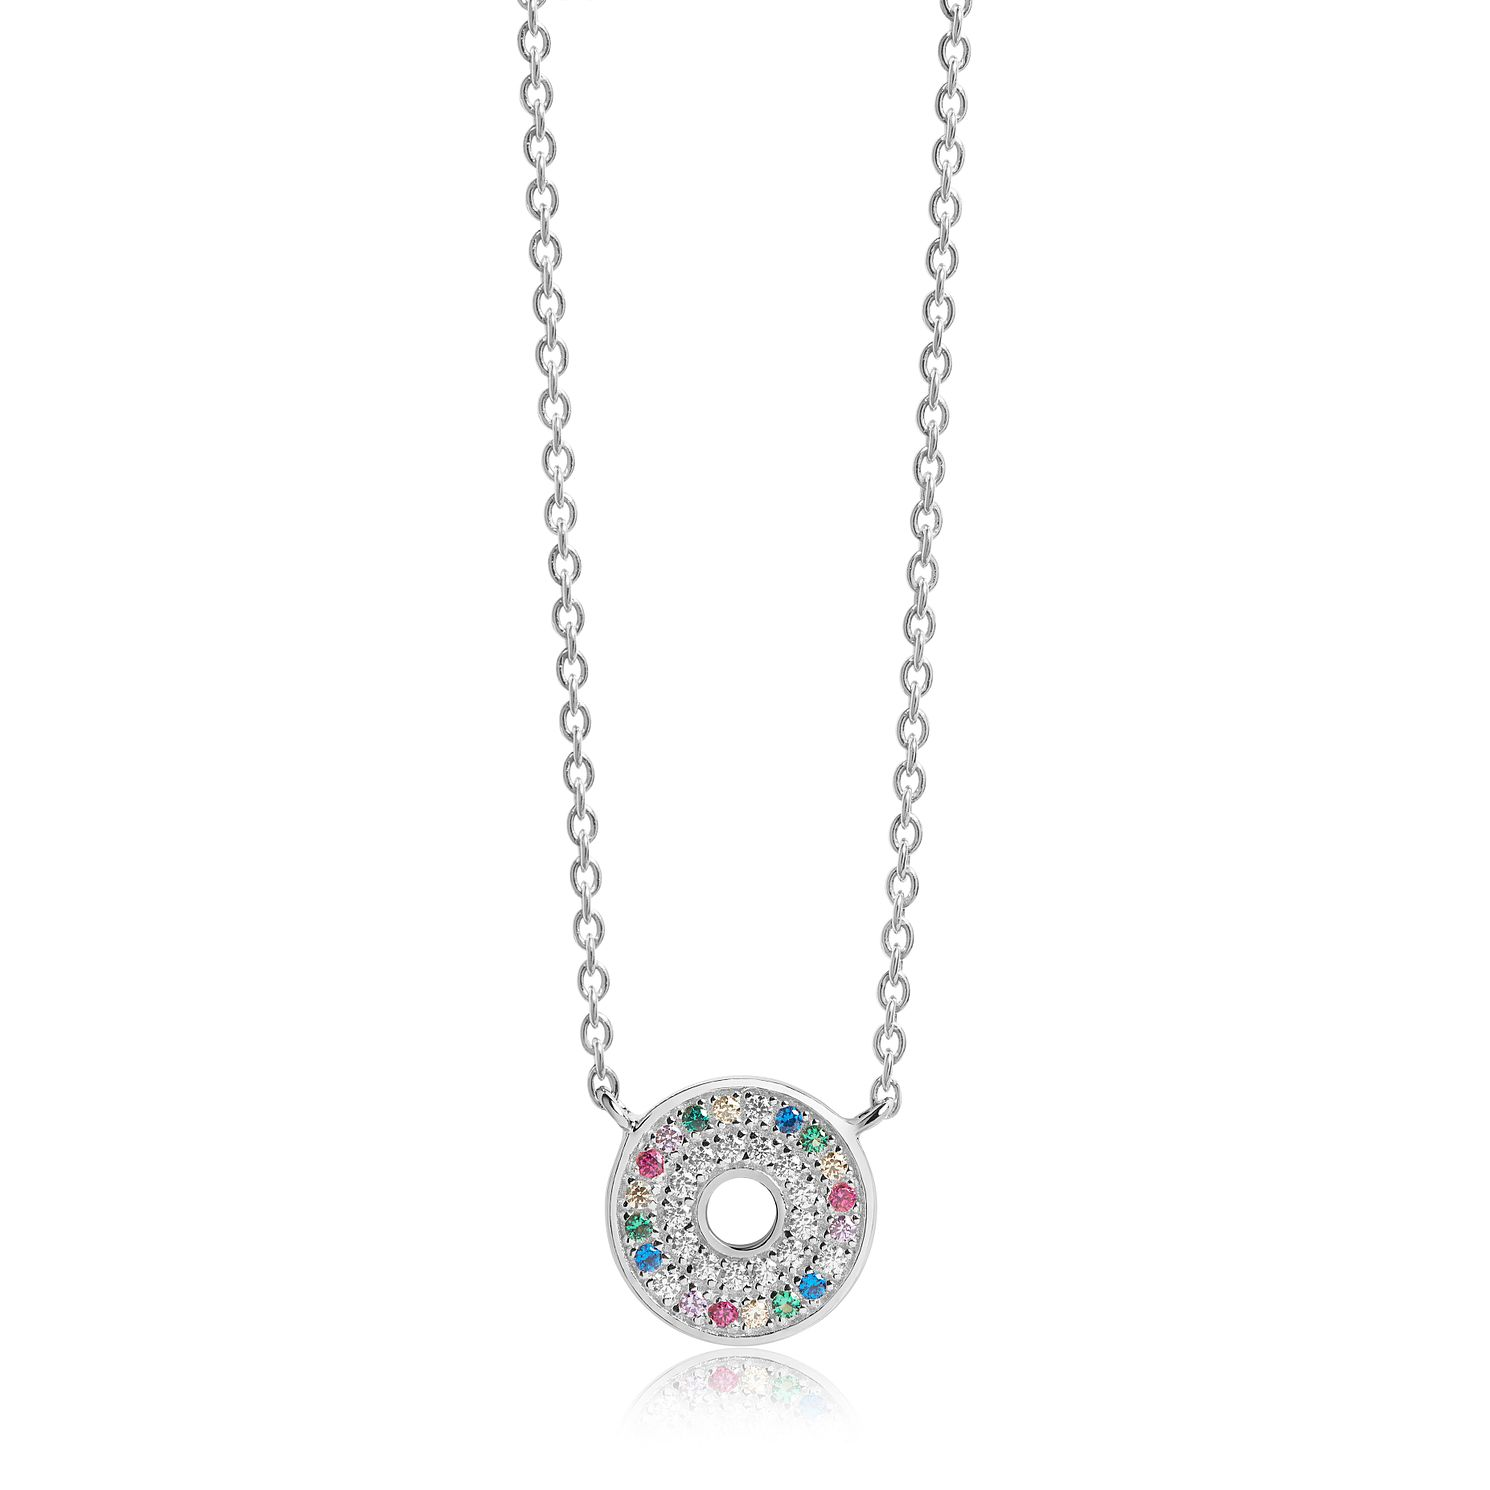 Sif Jakobs Valiano Multicolour Zirconia Necklace - Product number 4702220